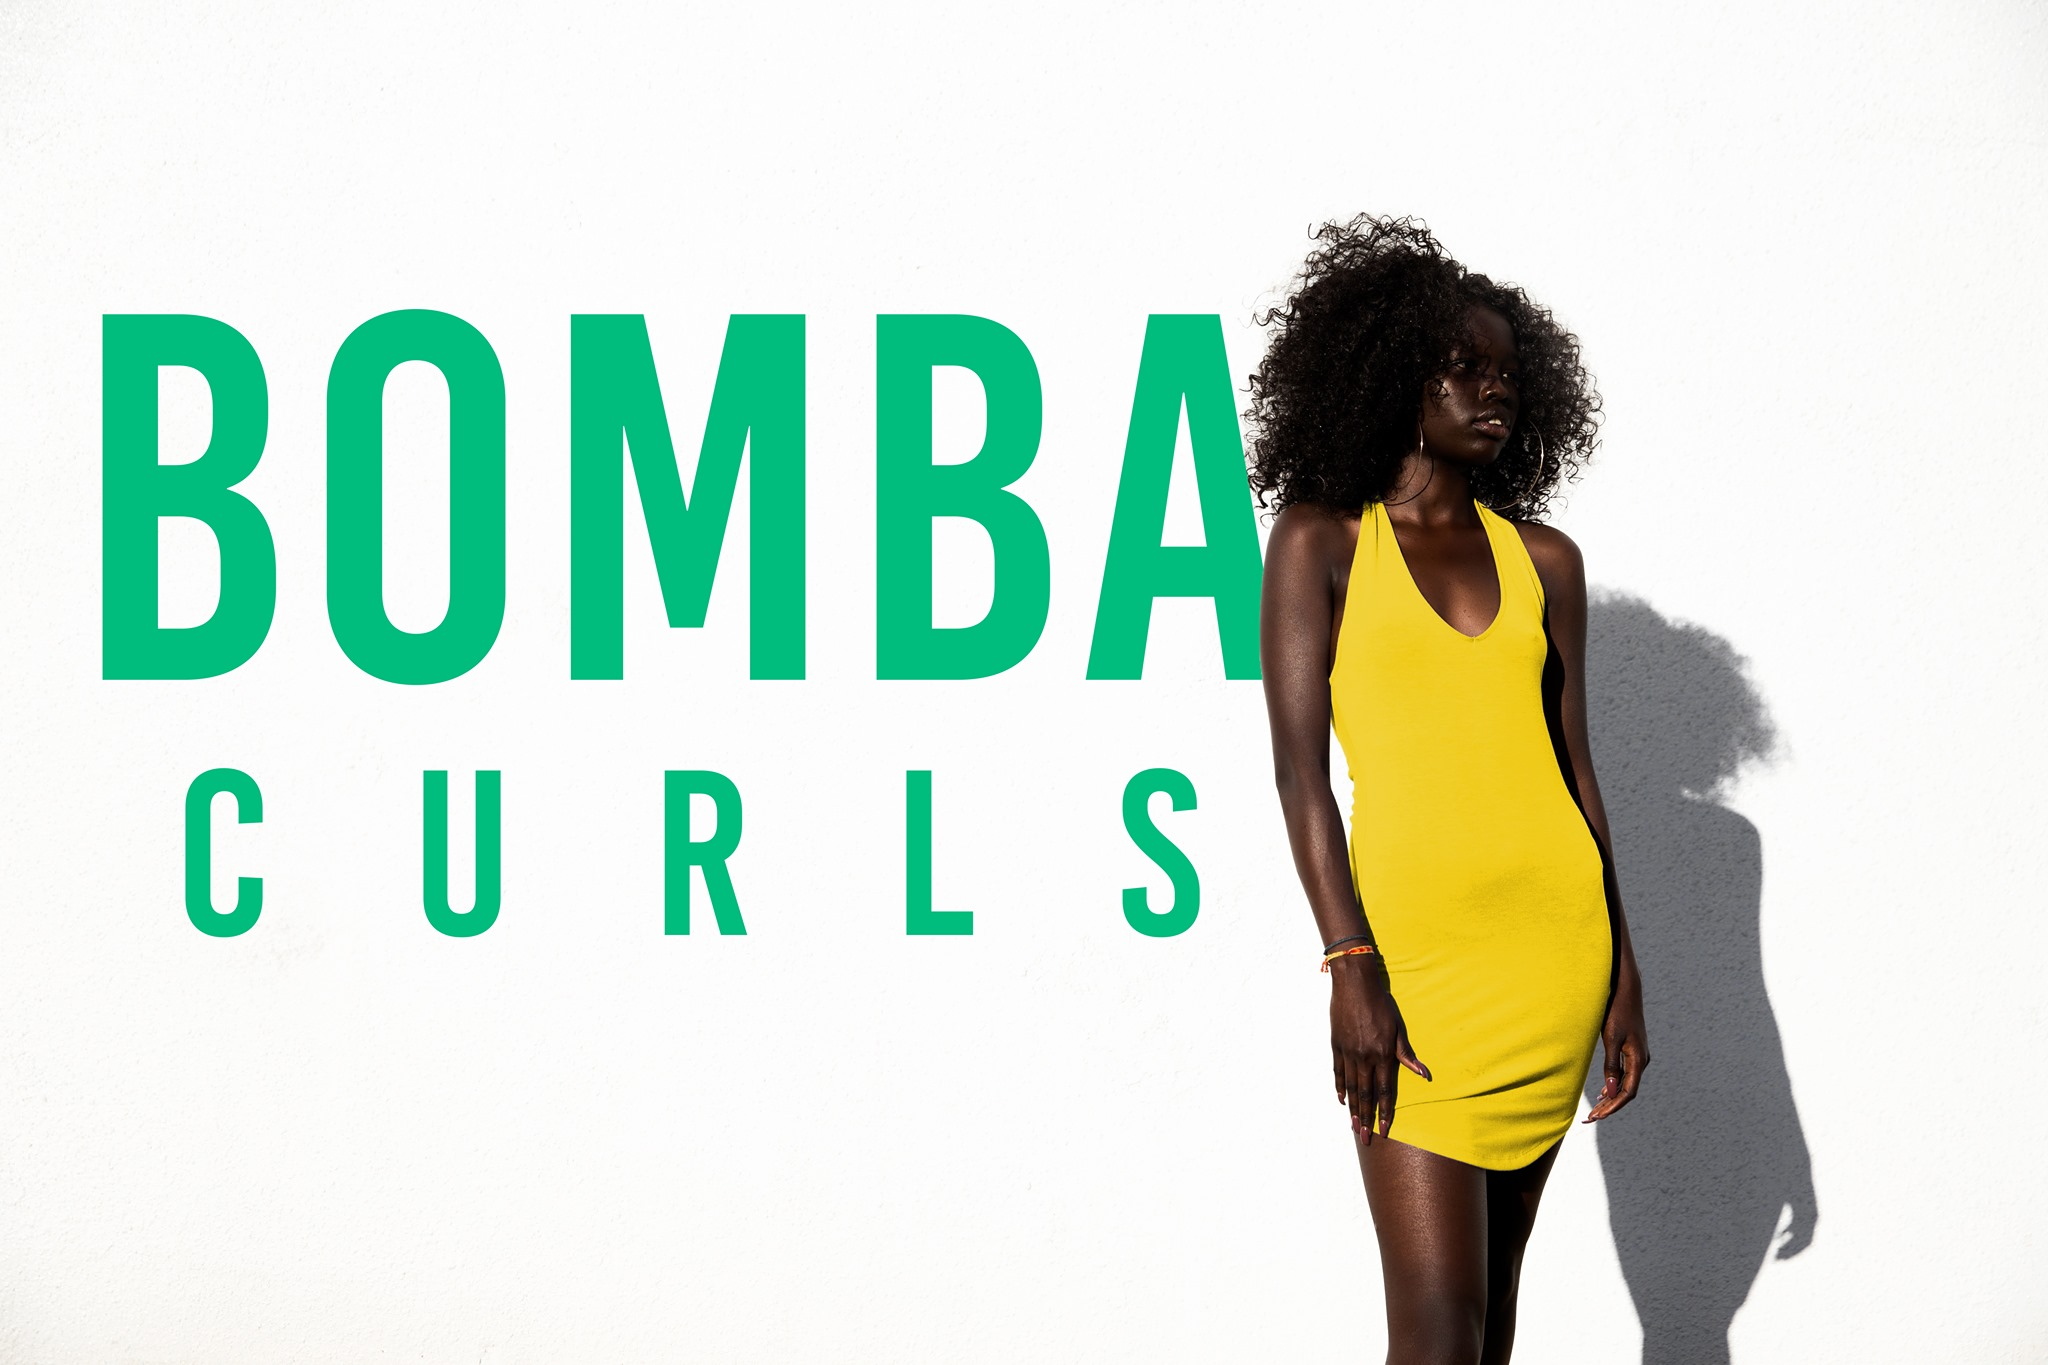 Bomba Curls (Hair oils, masks, beauty products)